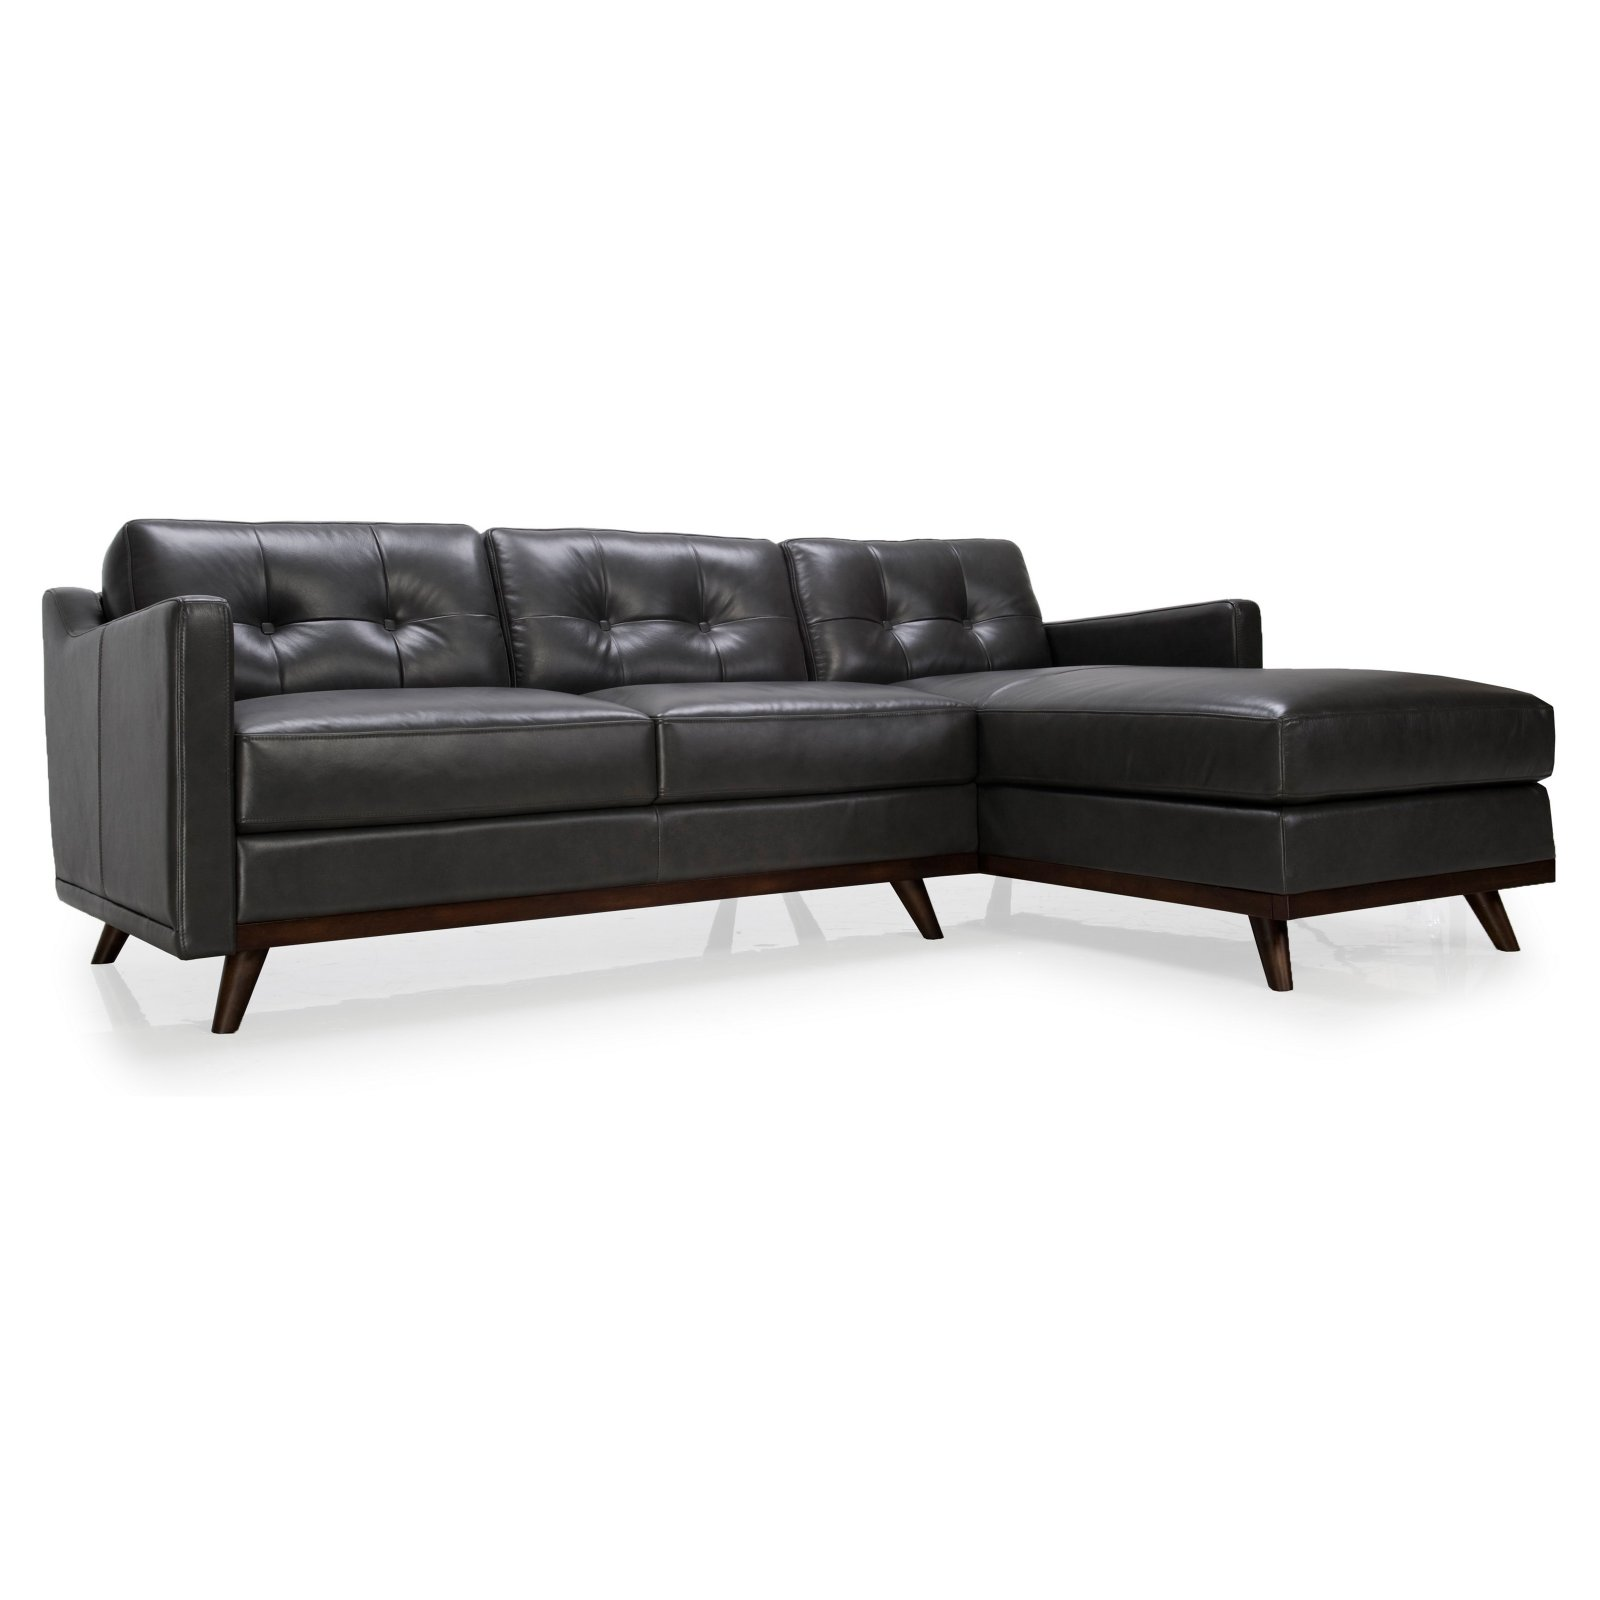 Moroni Monika Leather Sectional Sofa Walmart Com